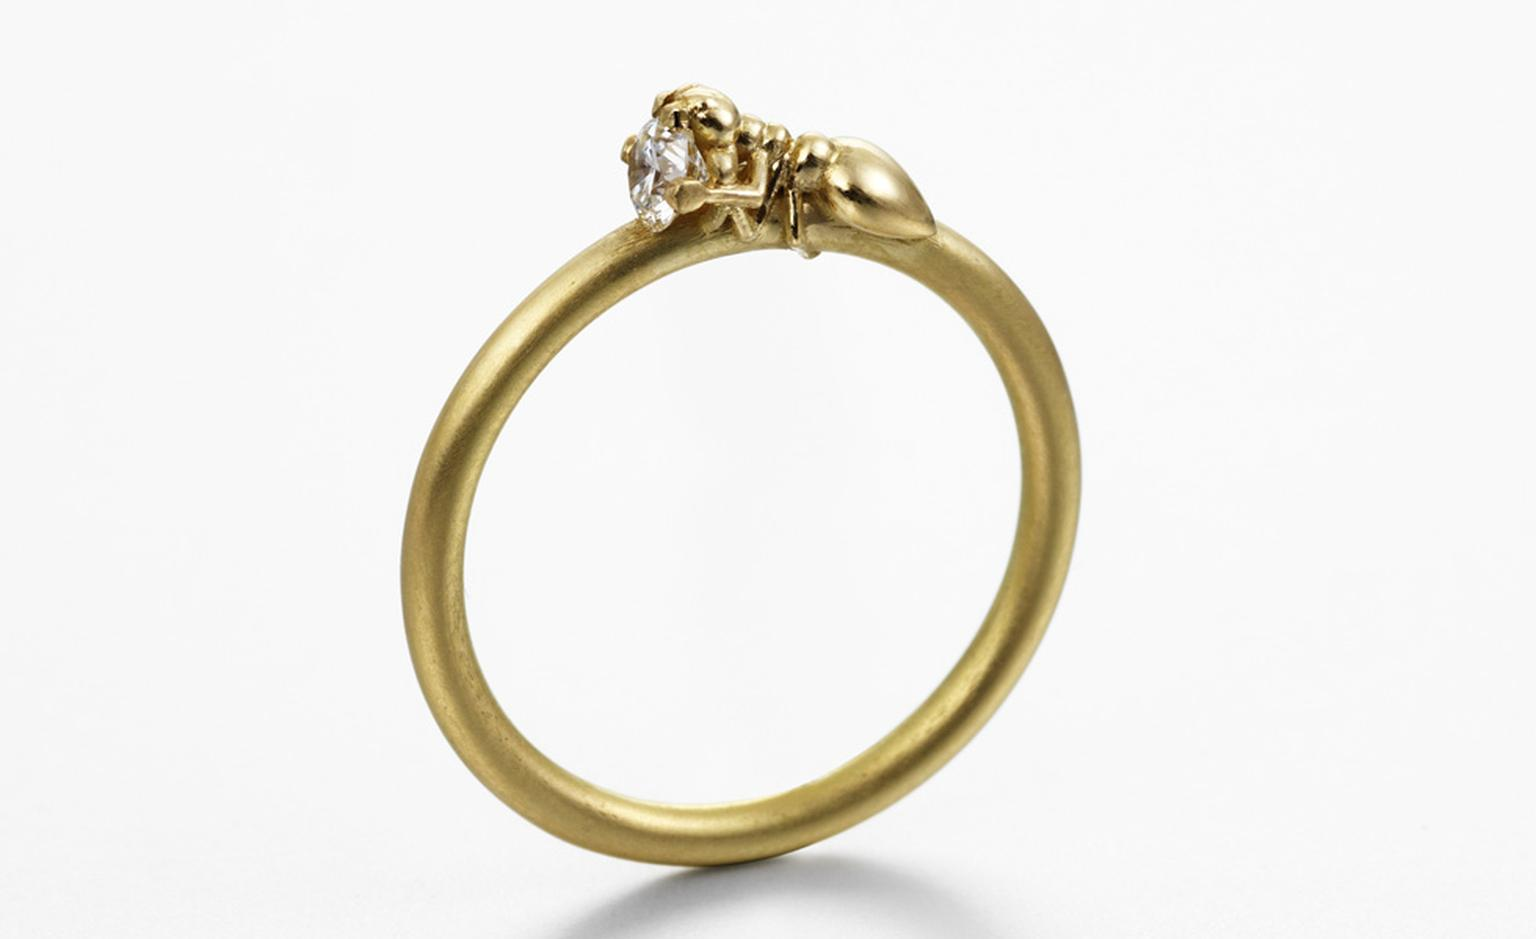 """Smallworkers I"" ring in yellow gold with a diamond by recent graduate Frances Wadsworth- Jones. A tiny ant attempts to make off with the gem. Prices start at £710 (depending on the stone)"